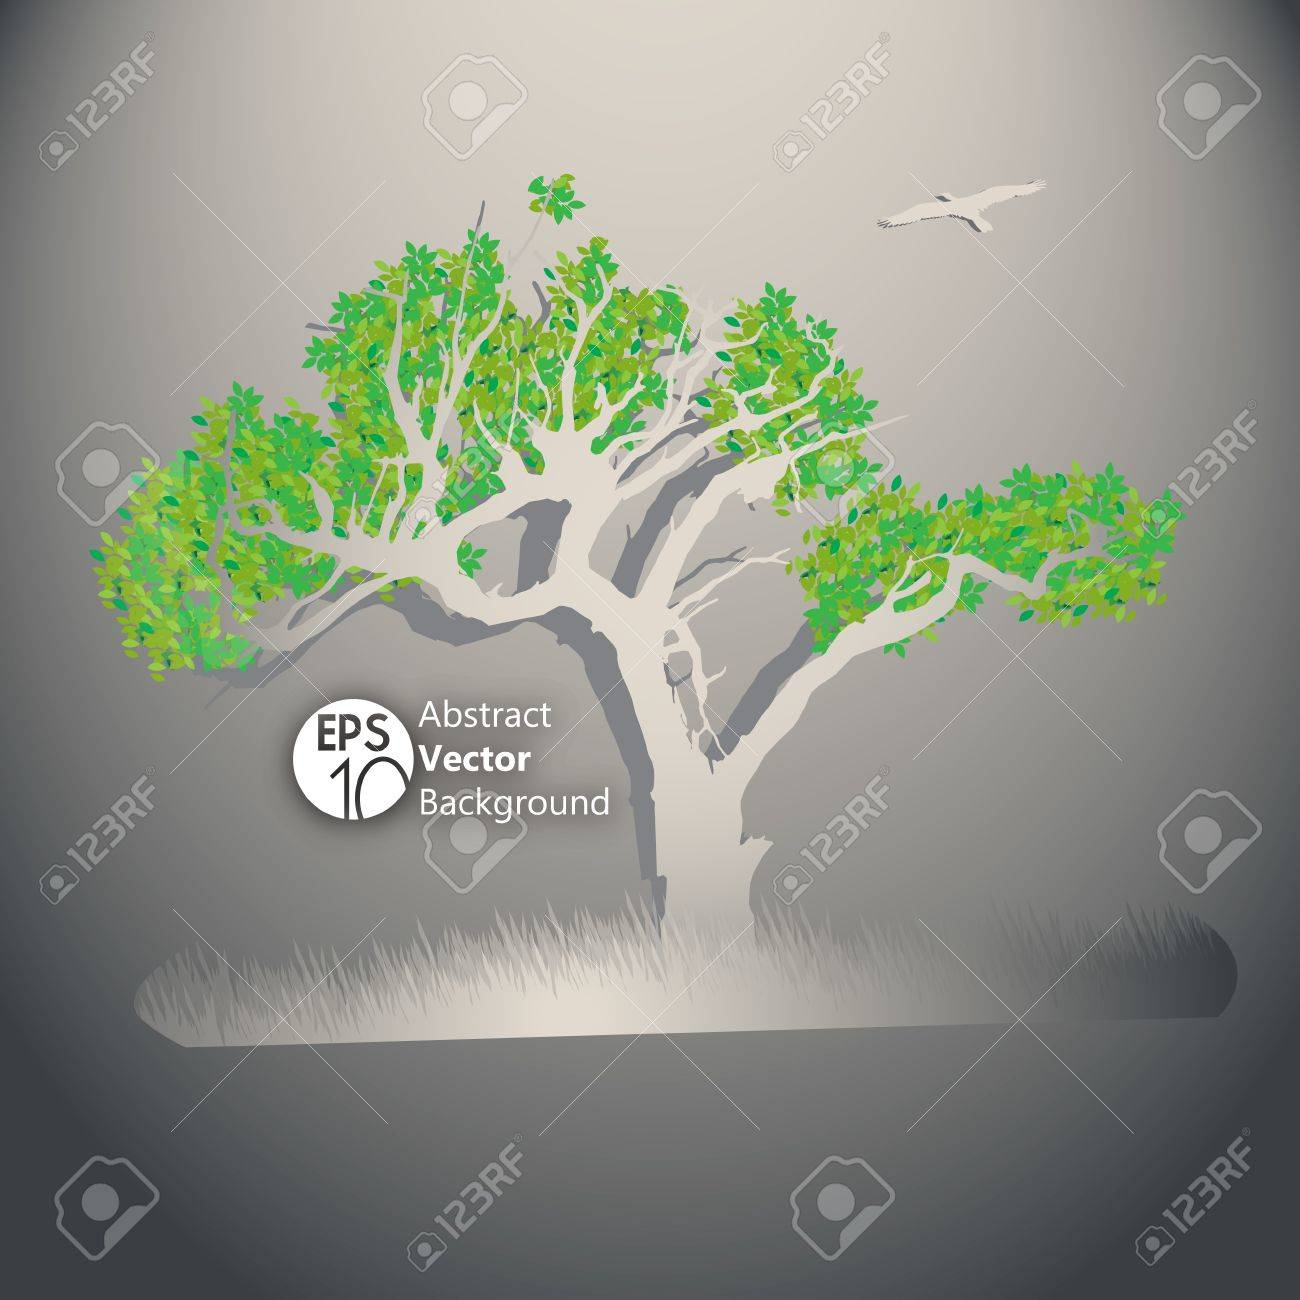 Tree illustration with green leafs and grass Stock Vector - 17454206